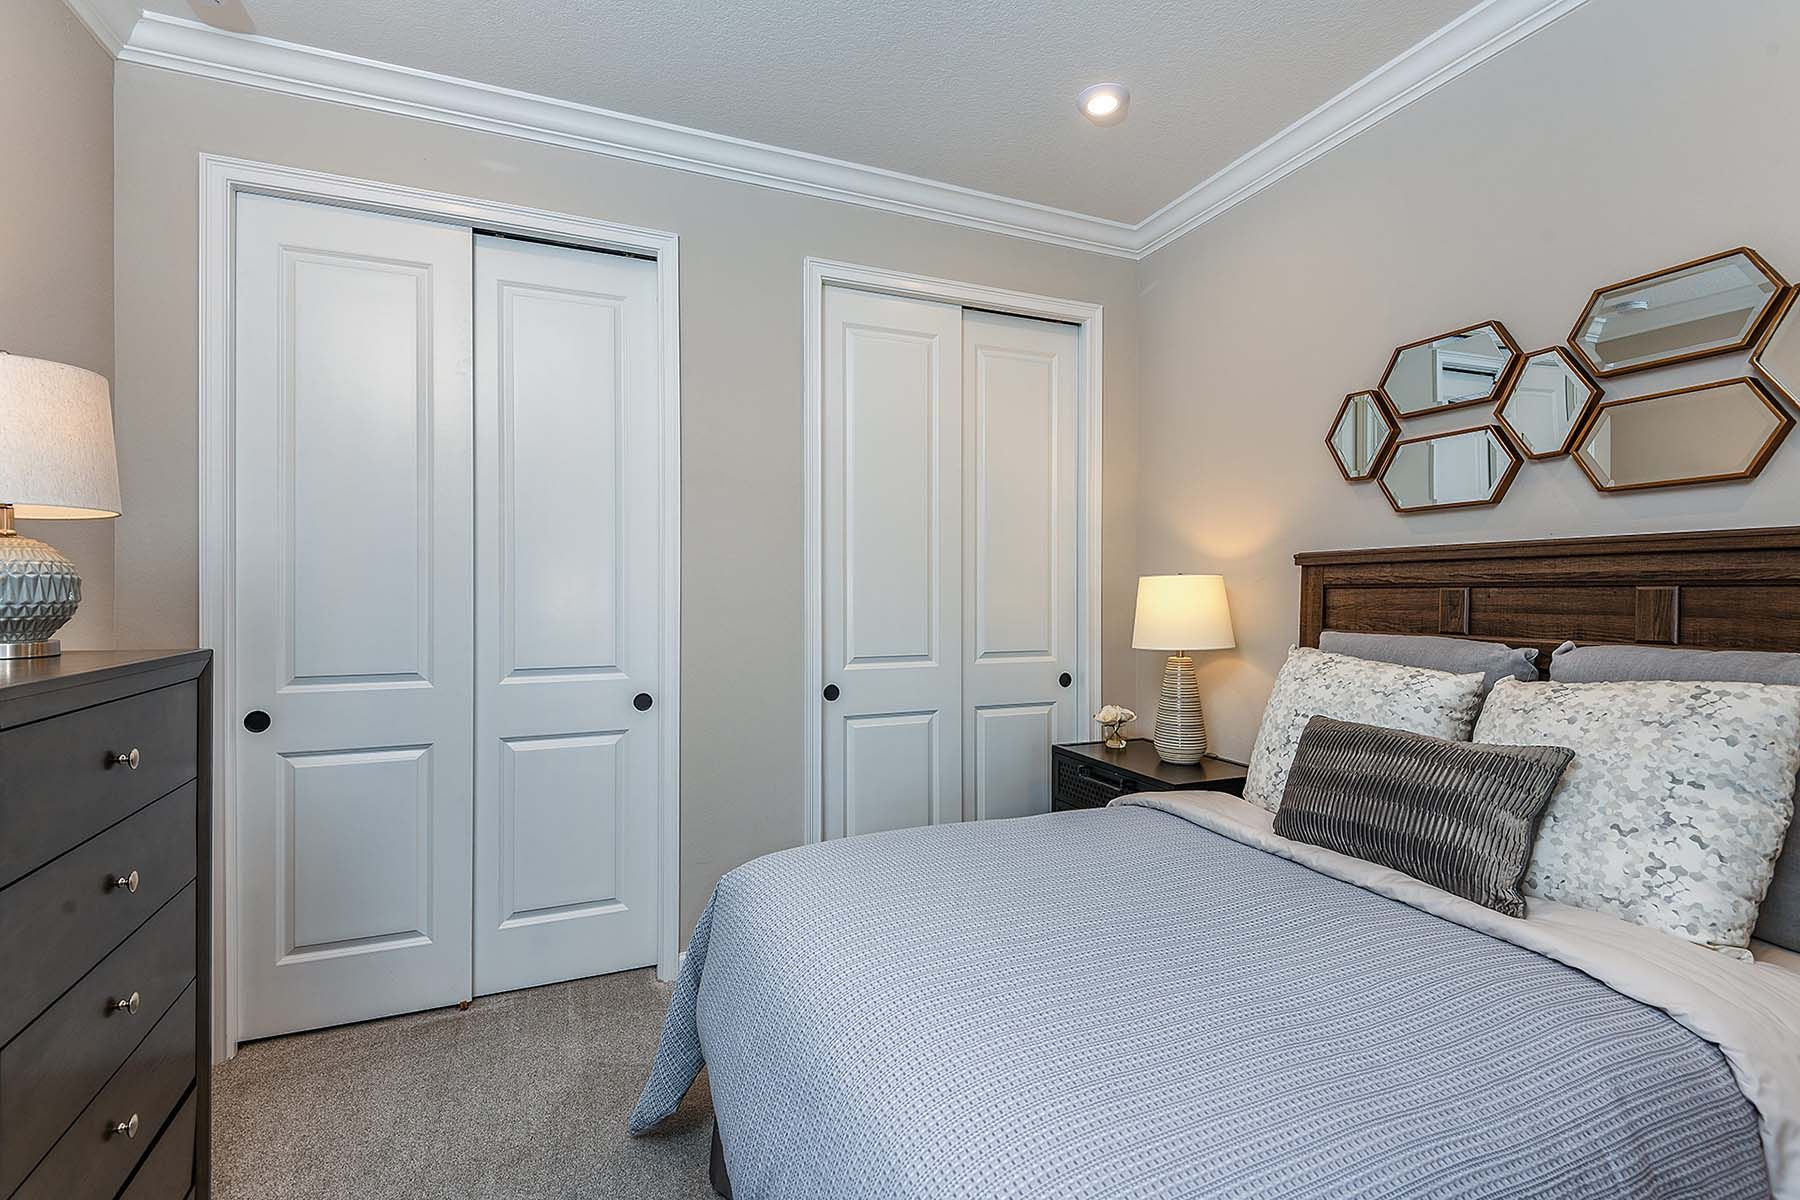 Bedroom featured in the Largo By Mattamy Homes in Fort Myers, FL